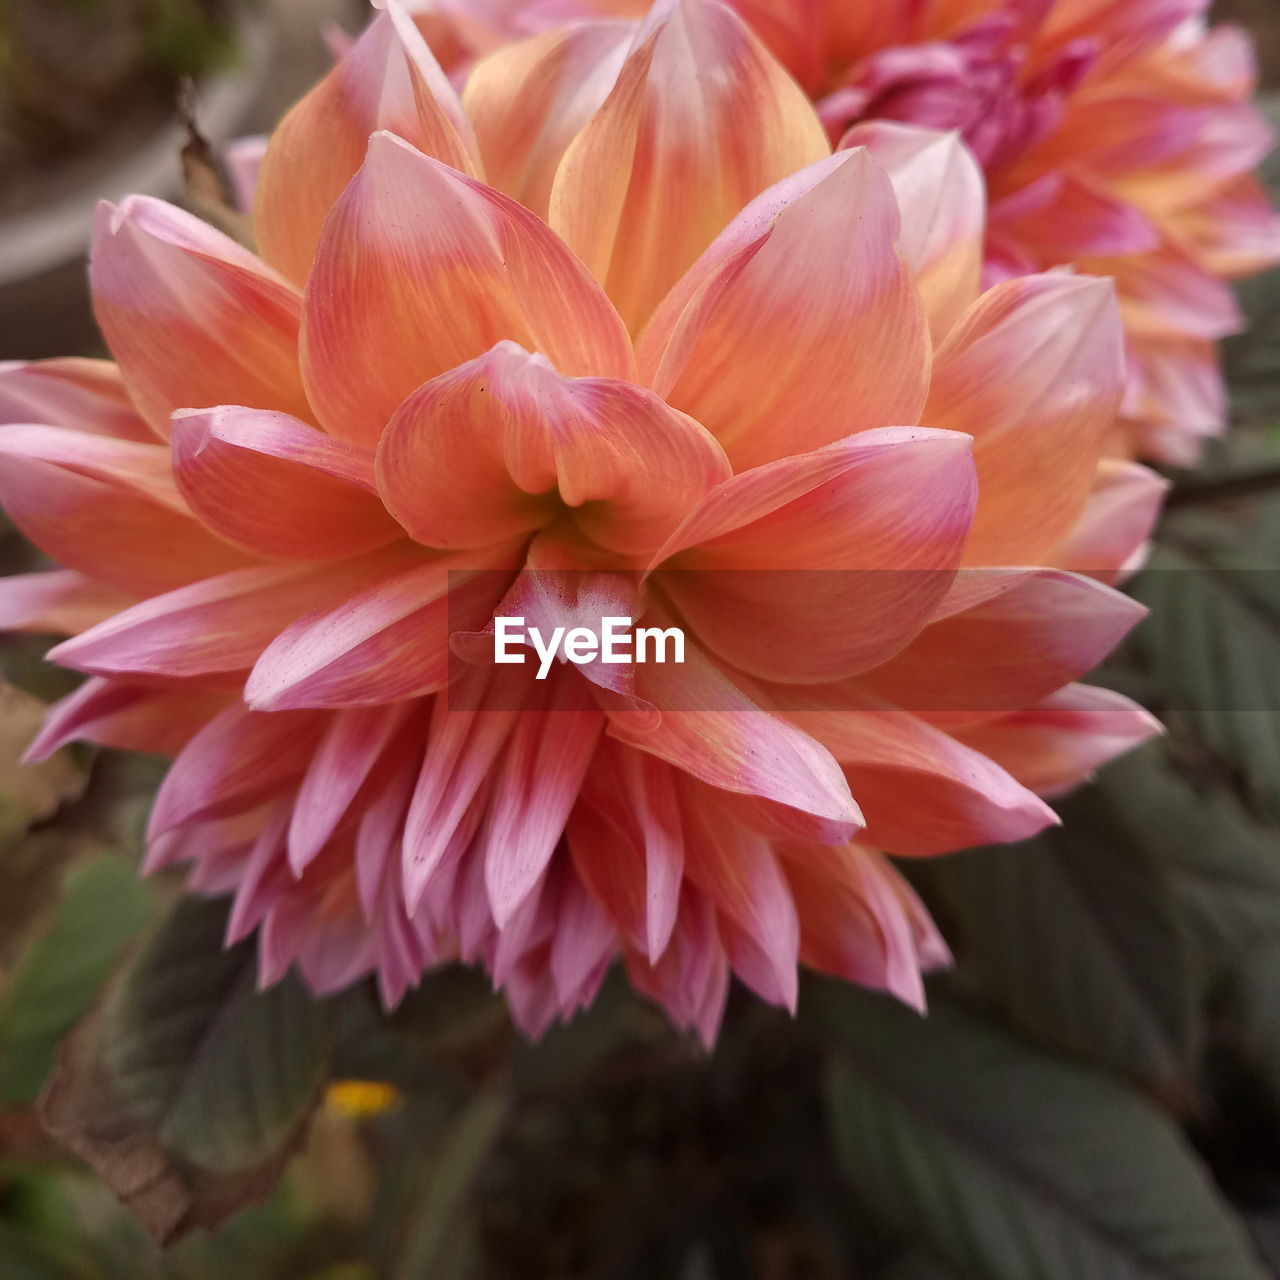 flower, petal, nature, beauty in nature, flower head, fragility, close-up, freshness, growth, focus on foreground, no people, plant, blooming, outdoors, day